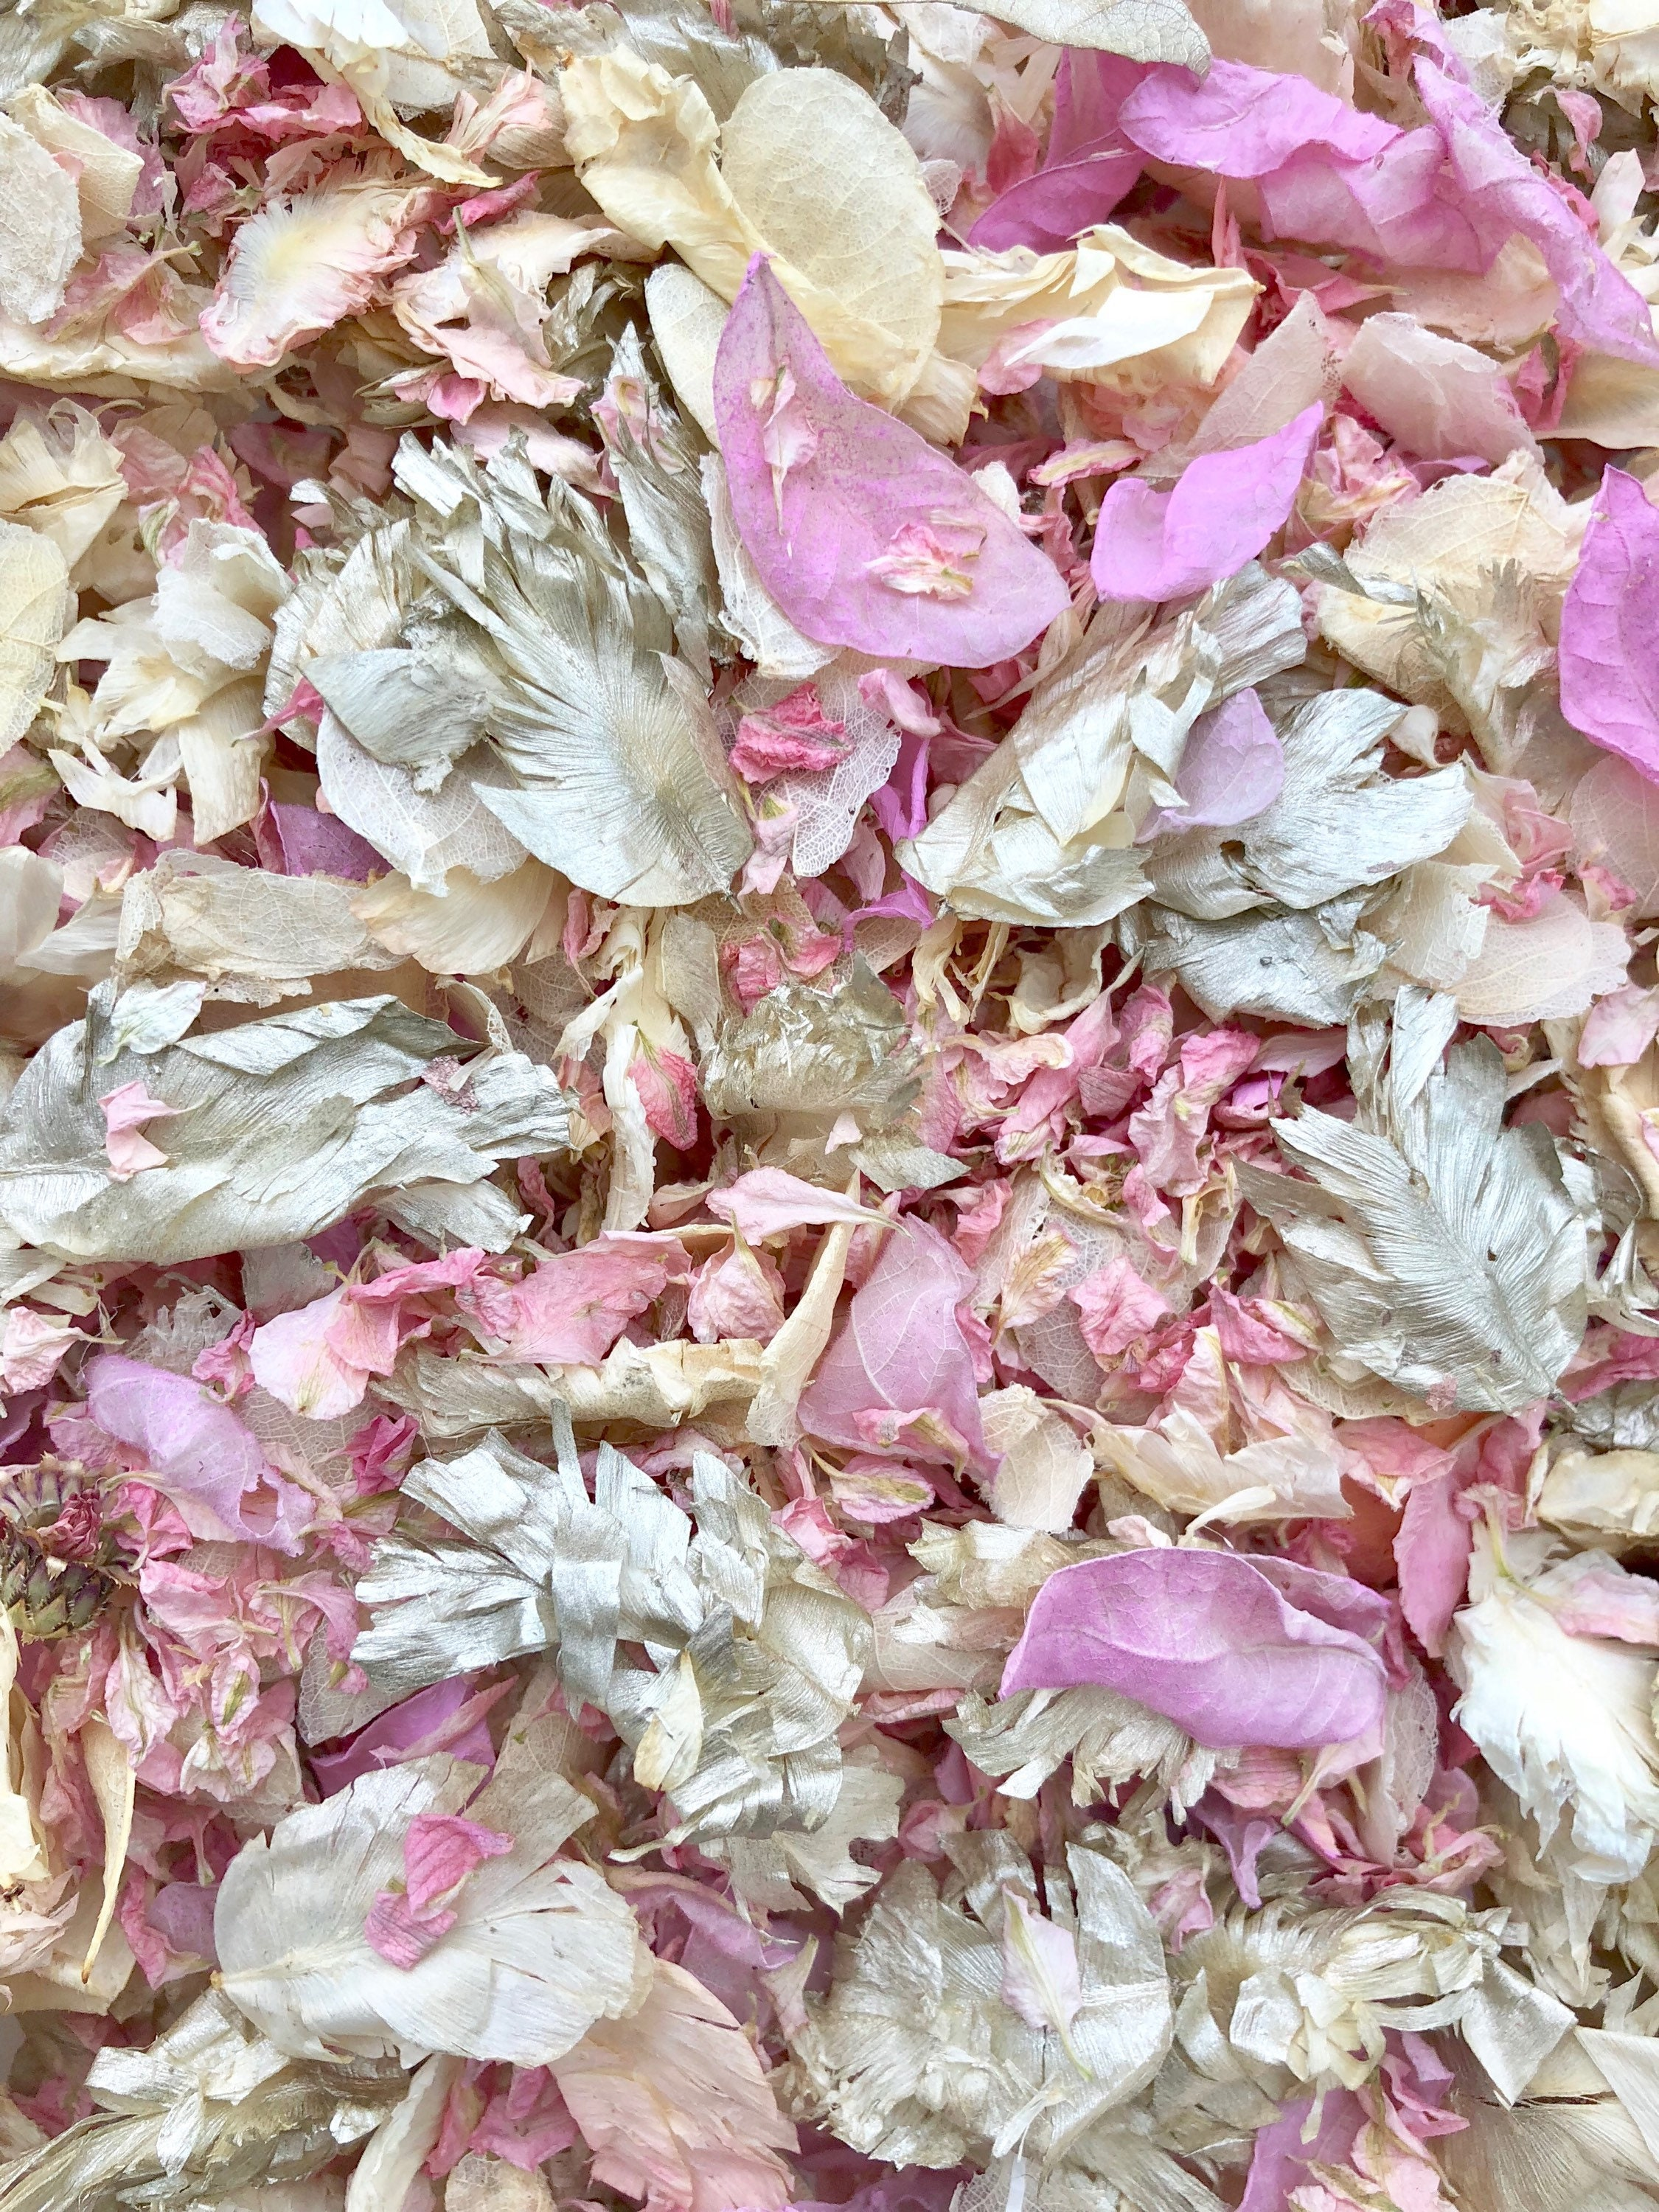 PPetal AUTUMN mix Biodegradable WEDDING CONFETTI Dried IVORY PP